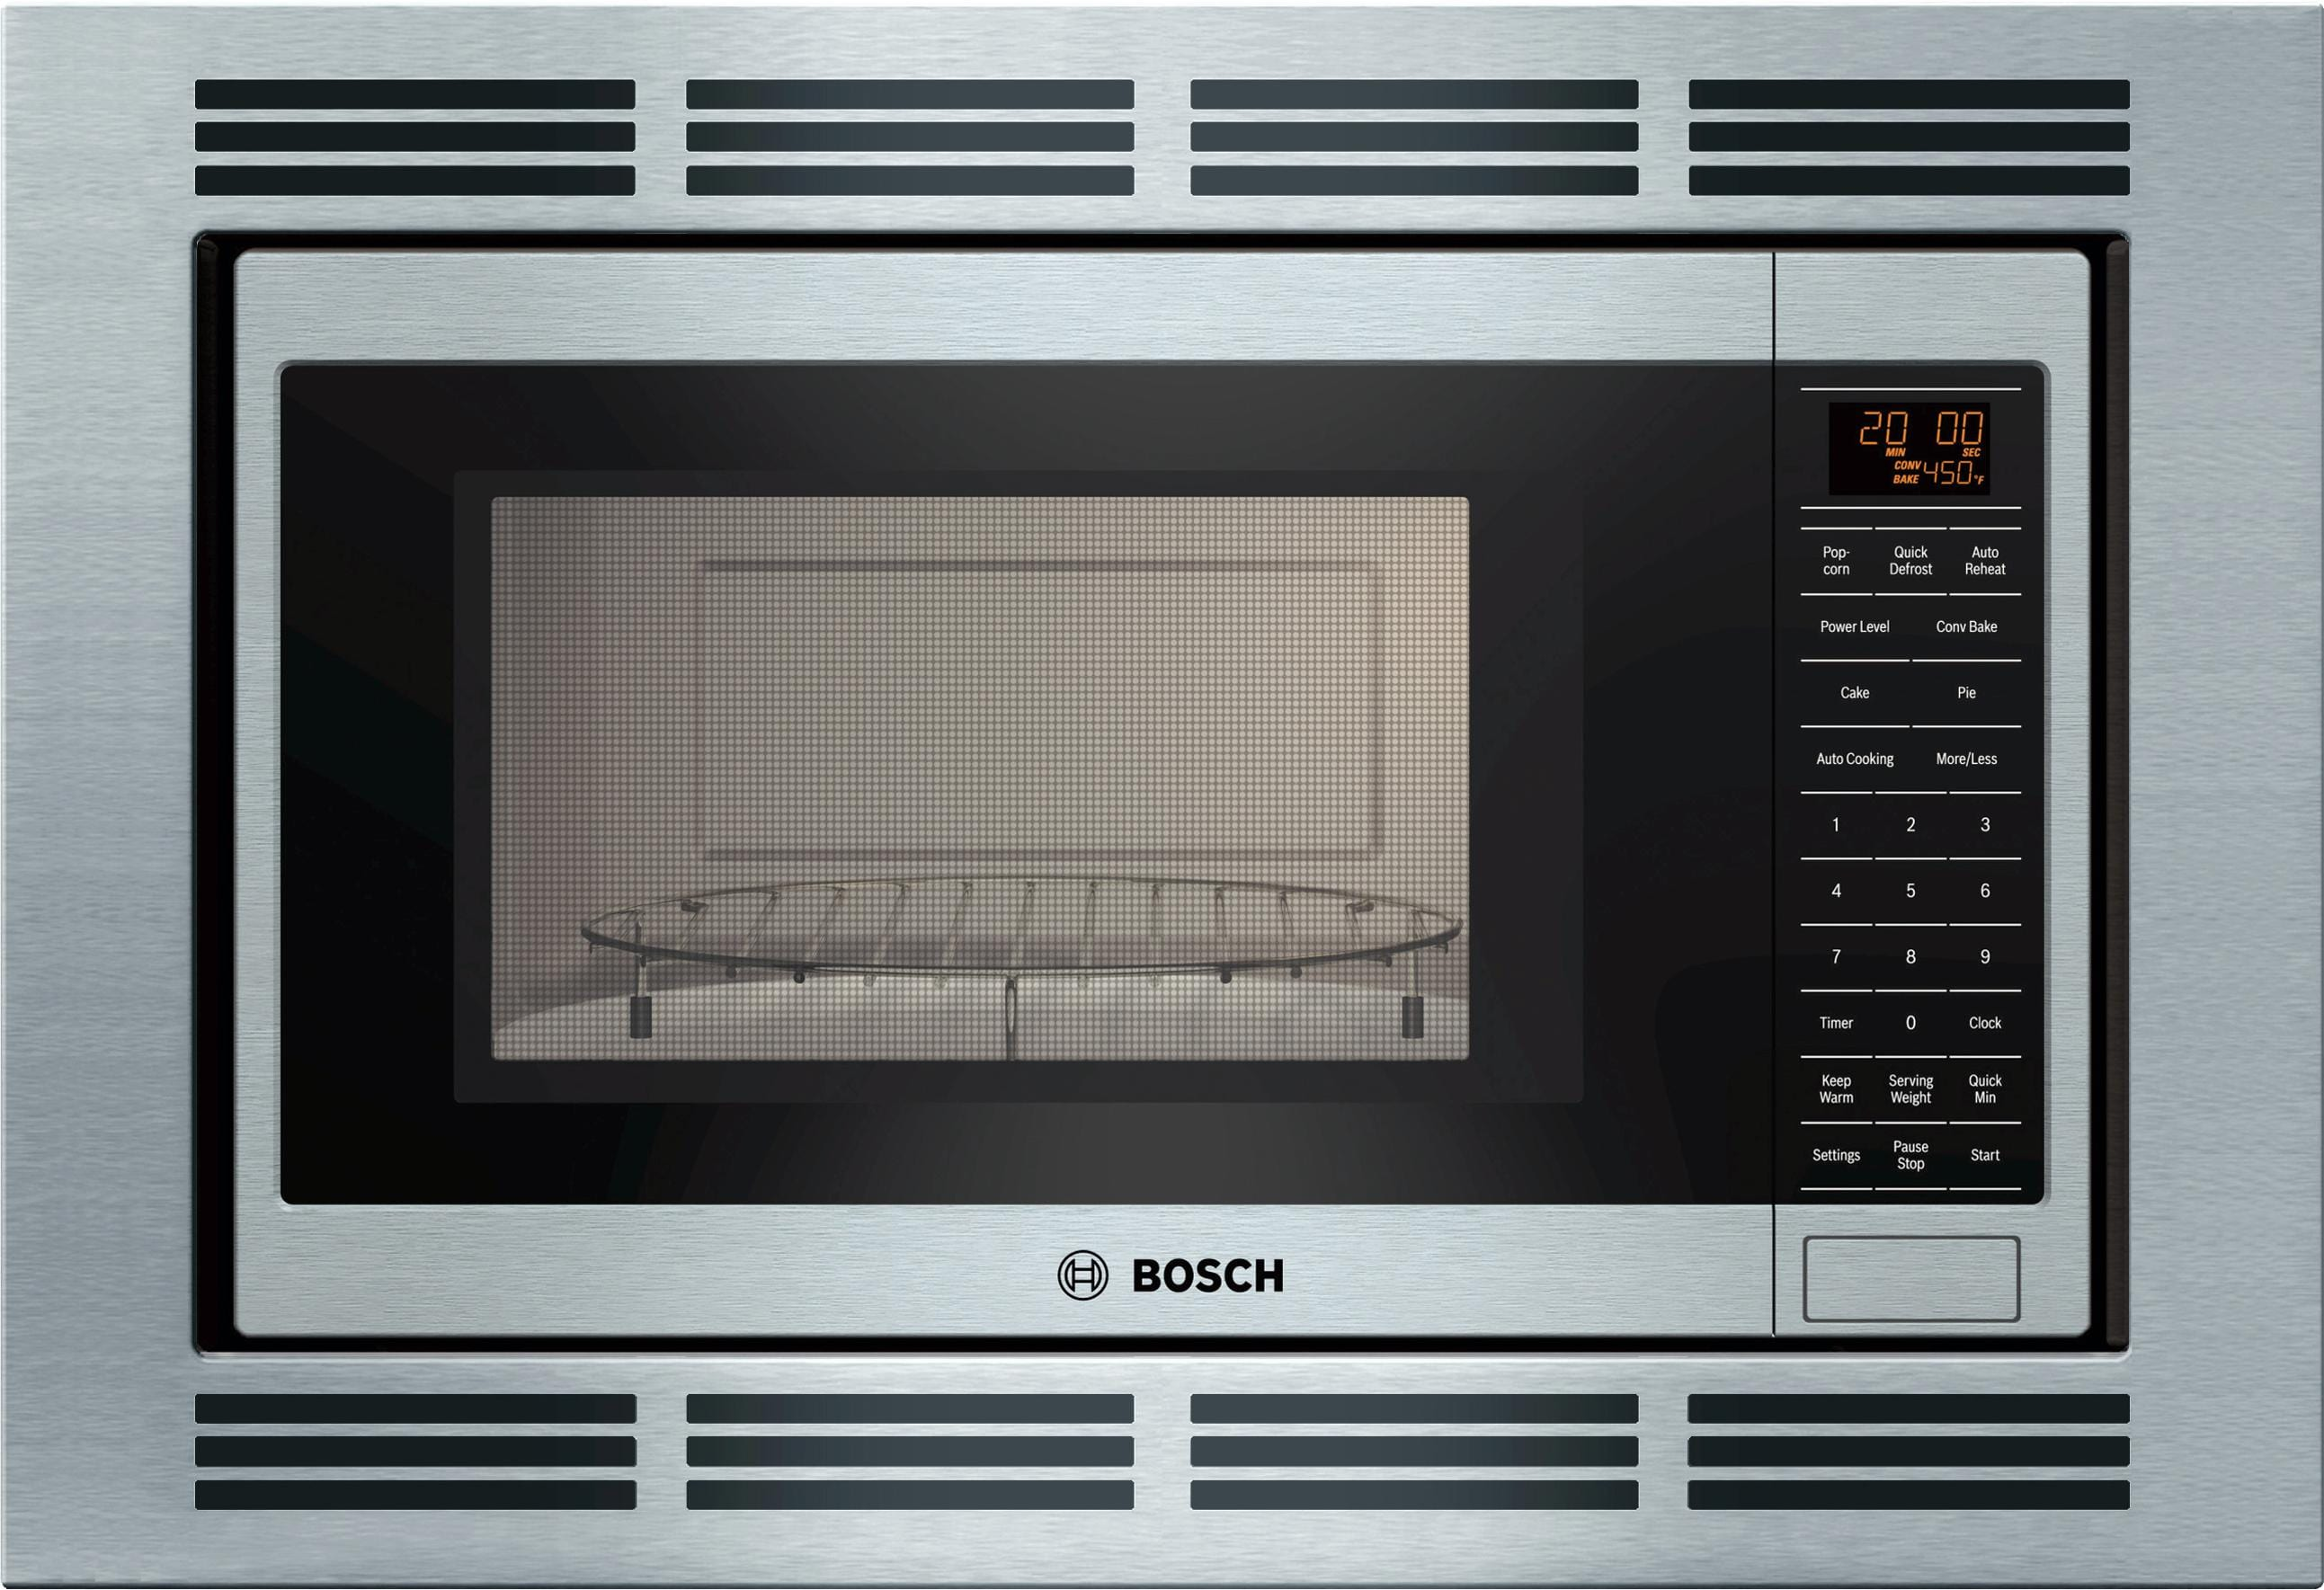 Bosch Microwave Built In Convection Microwave 800 Series Stainless Steel